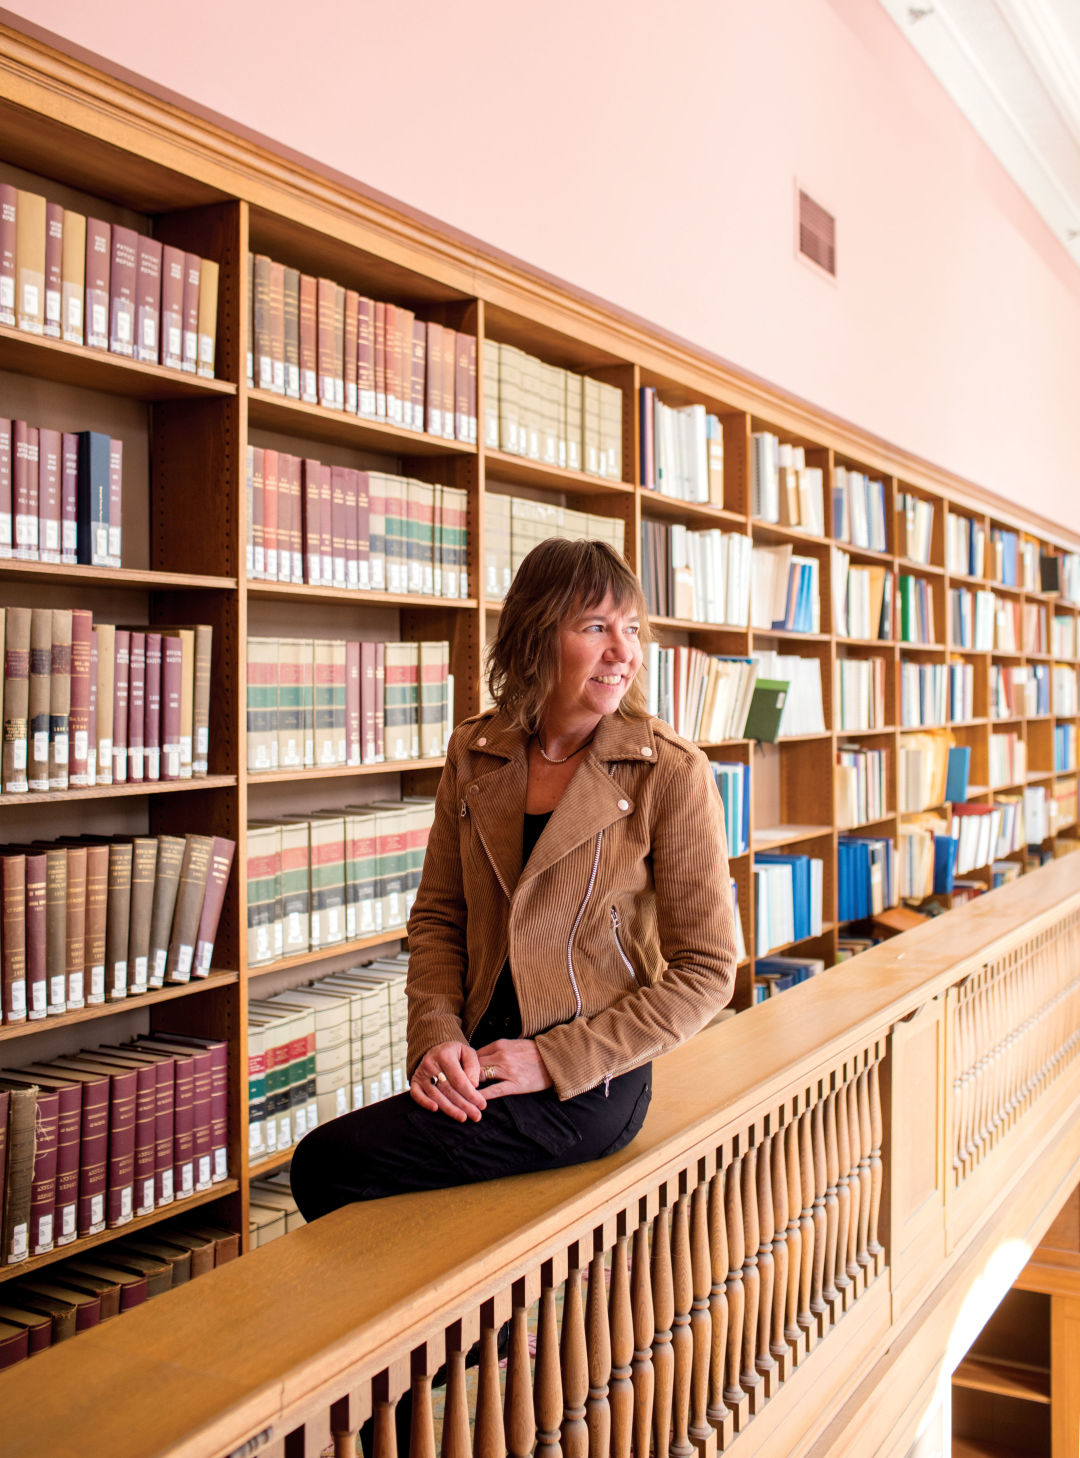 On Vailey Oehlke's Watch, the Multnomah County Library Is